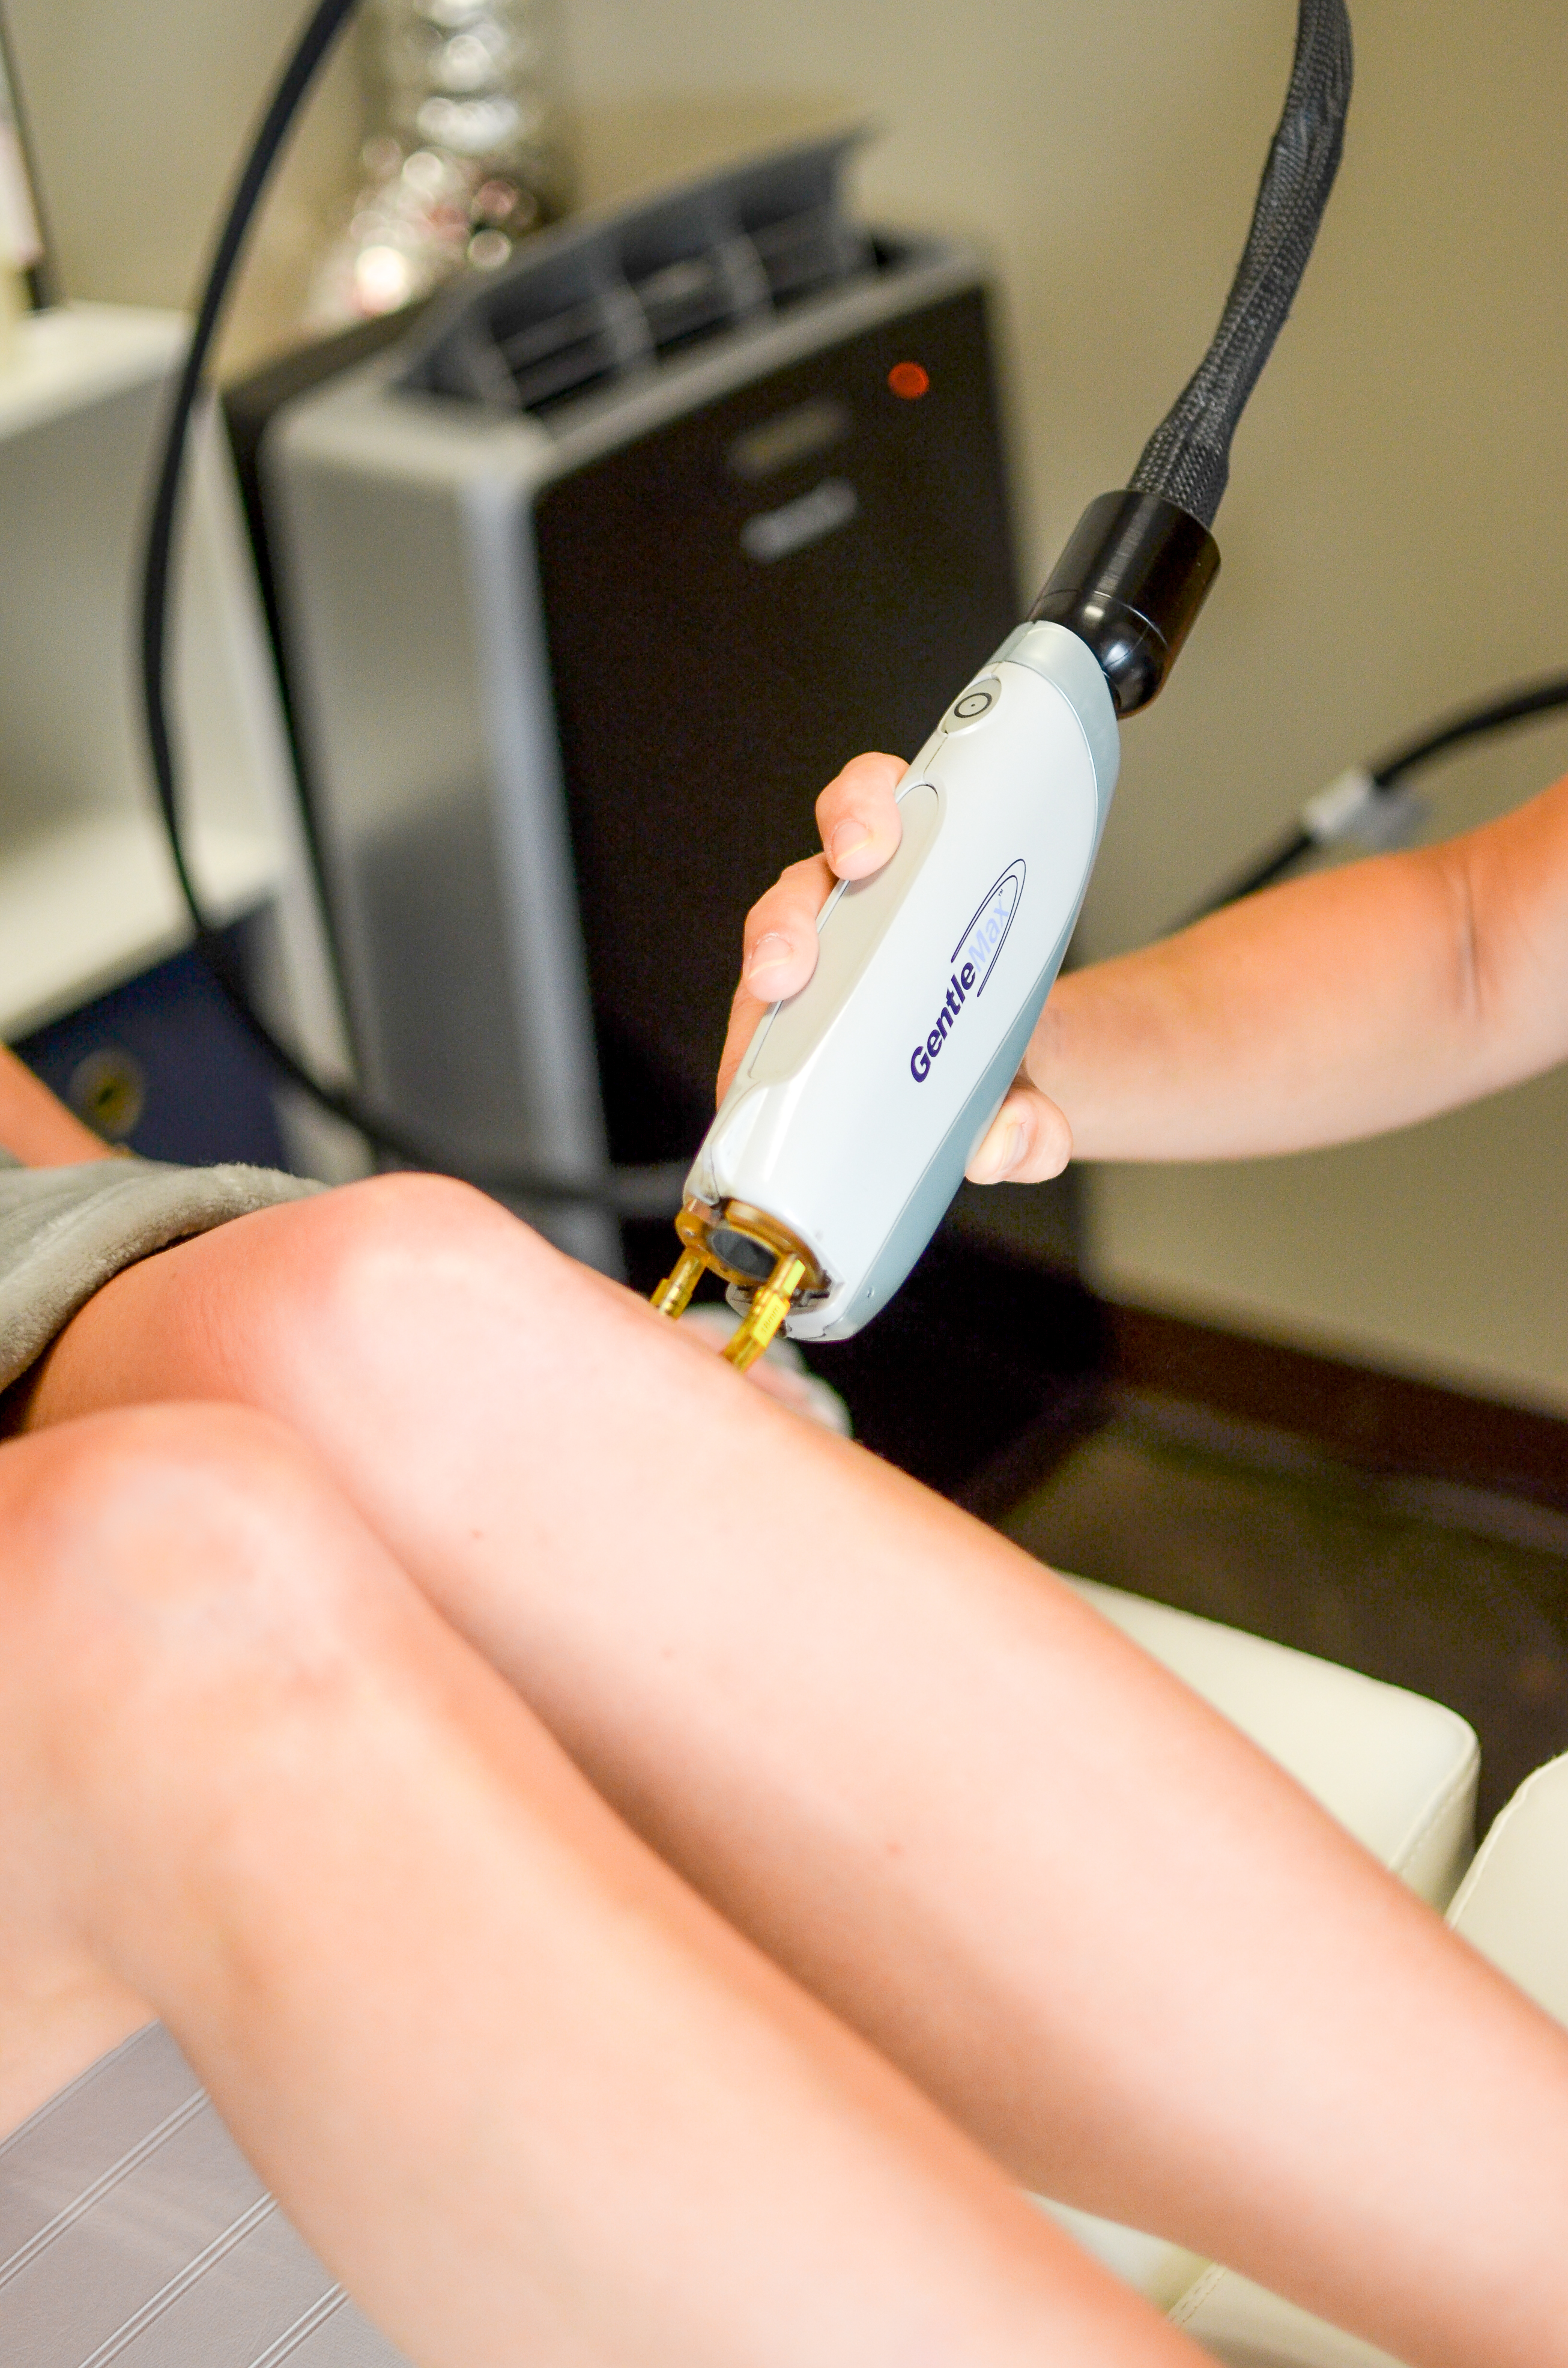 celebrity-style-hair-removal-laser